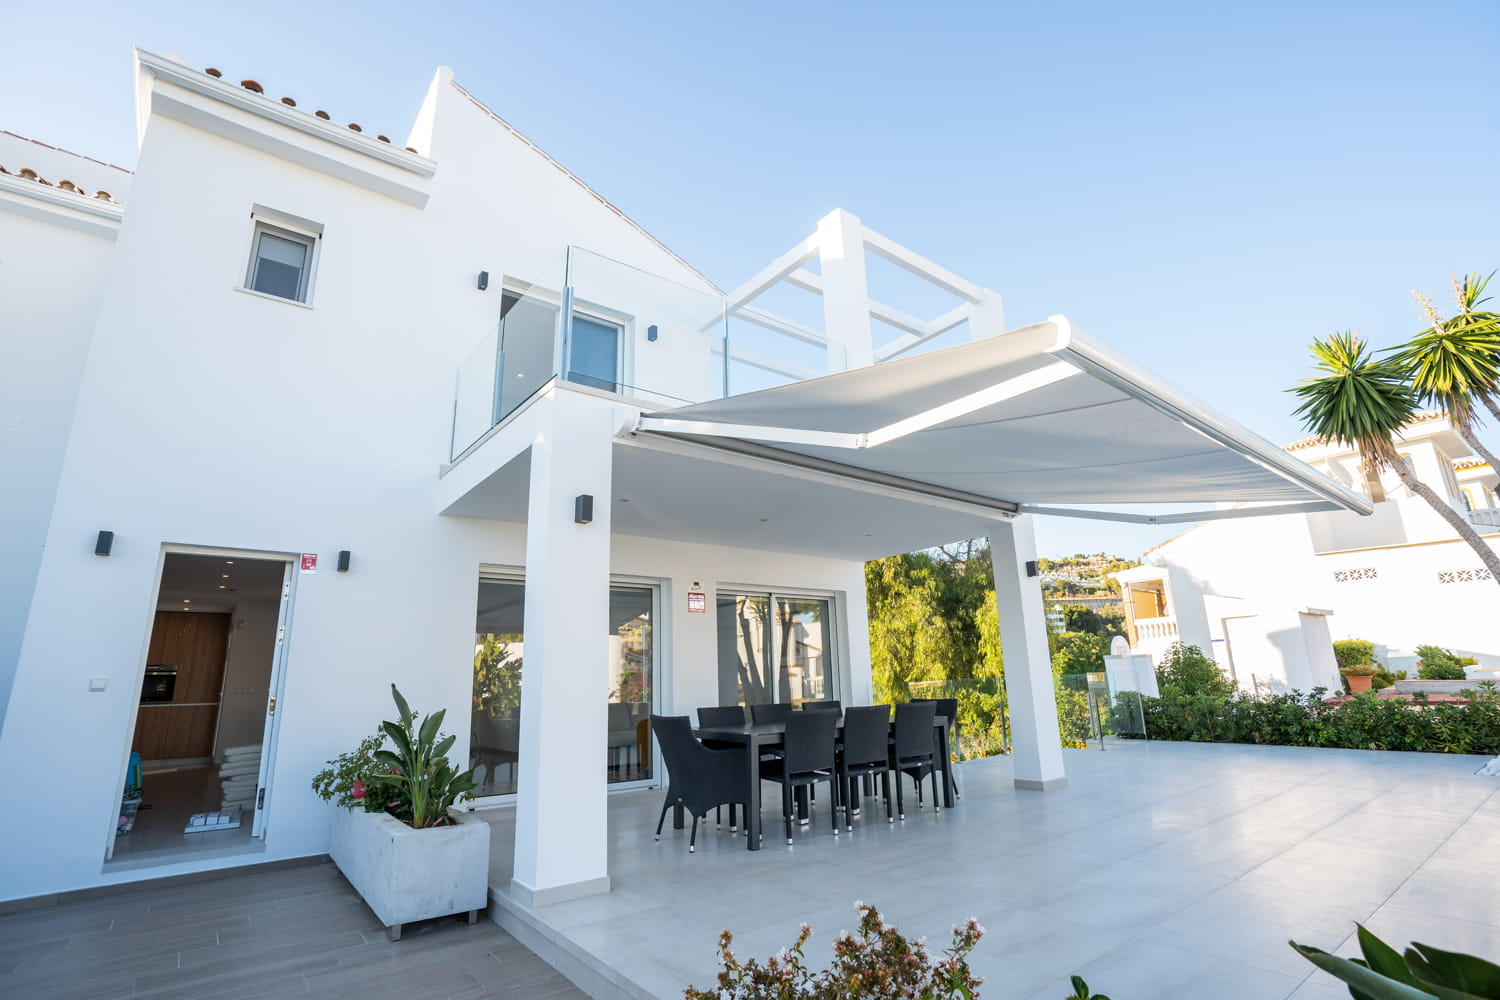 reforma integral villa mijas costa u projects (10)